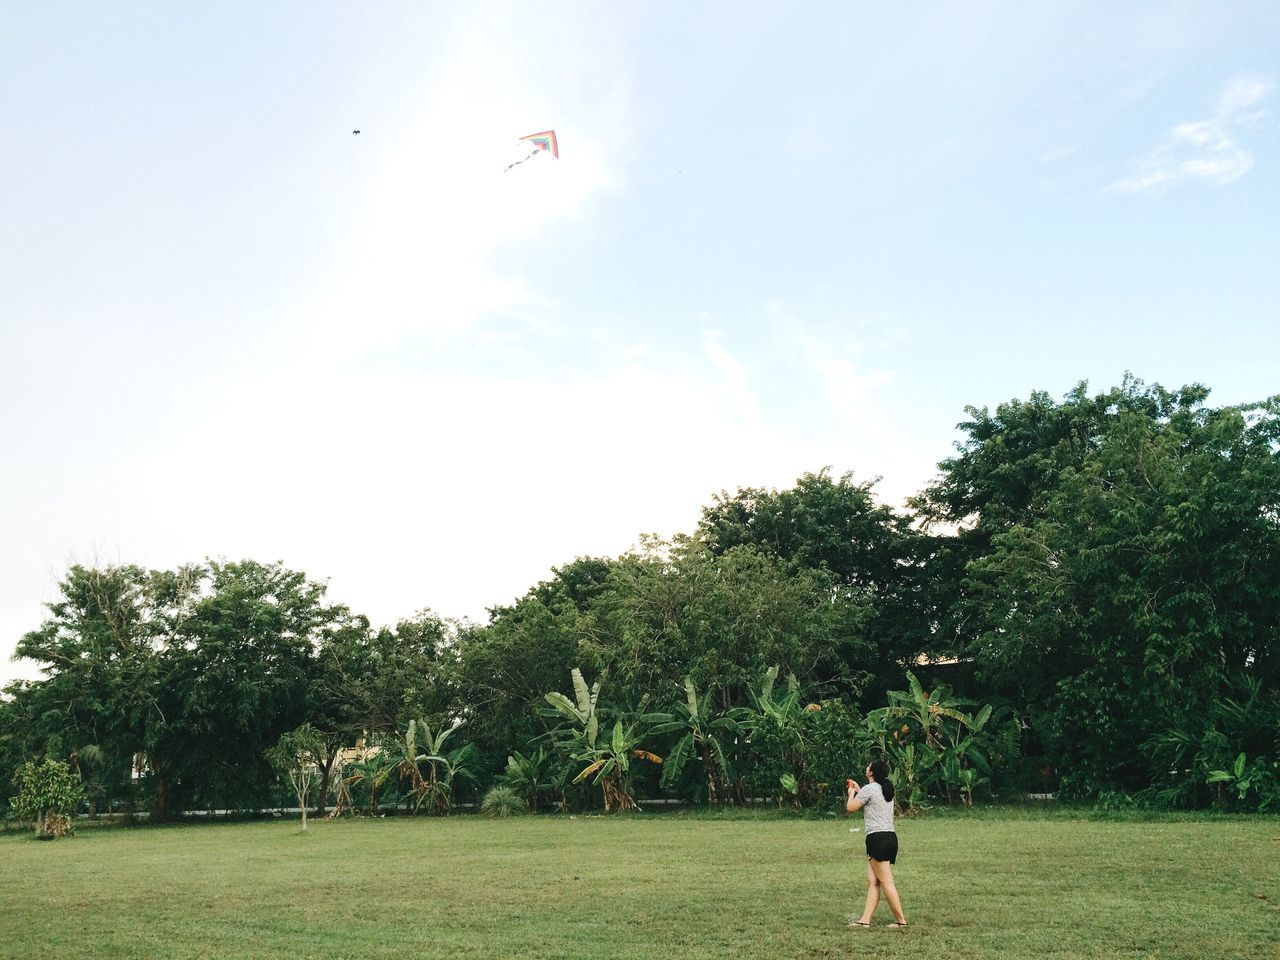 IPhoneography VSCO EyeEm Gallery My Point Of View September 2016 Playing Kite Evening Kite Field Women Minimalism Leisure Activity Leisure Time Weekend Activities Happy Enjoying Life EyeEm Best Edits Simple Life Fun Relaxing Weekend Holidays